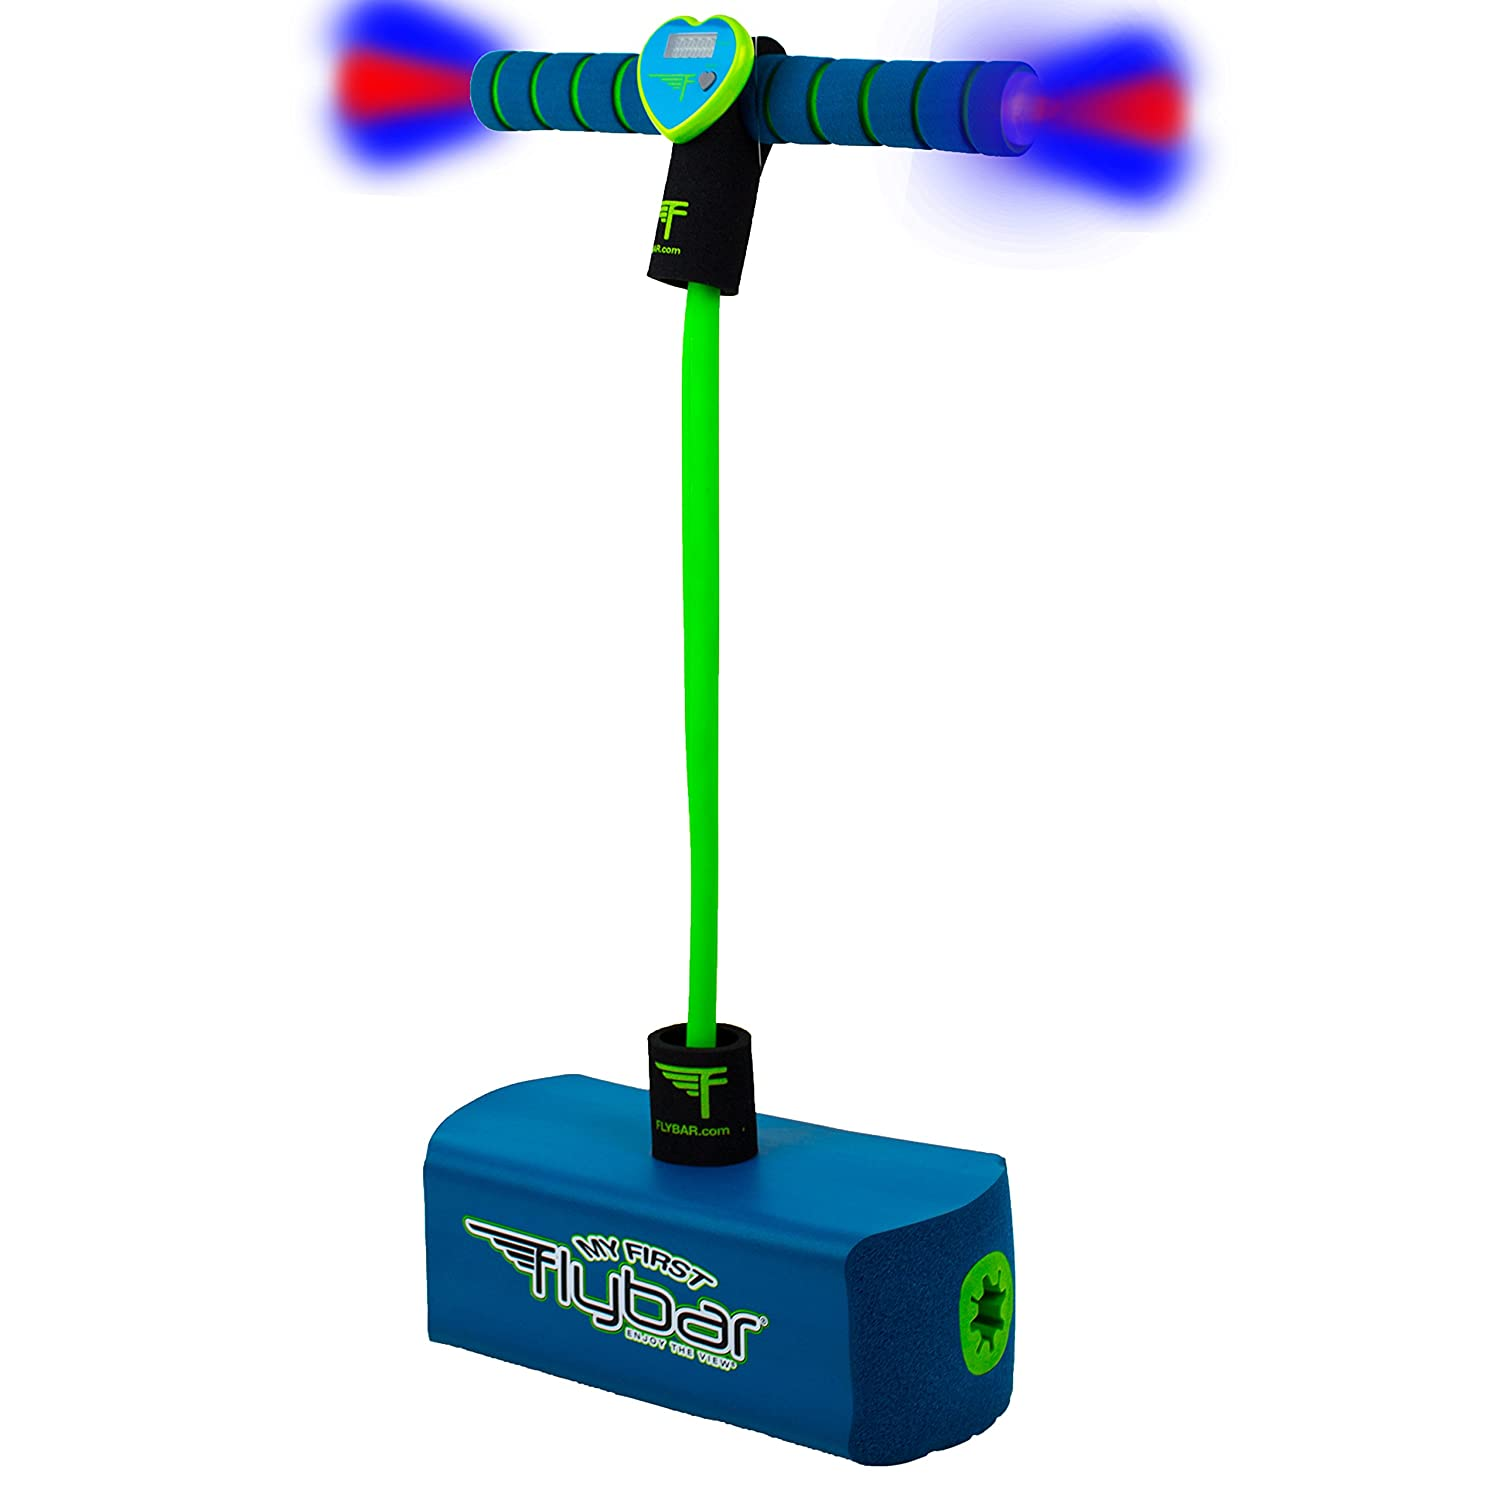 Flybar My First Pogo Pals Jumper for Kids Fun and Safe Pogo Stick for Toddlers, Durable Foam and Bungee Jumper for Ages 3 and up, Supports up to 250lbs (Frog)